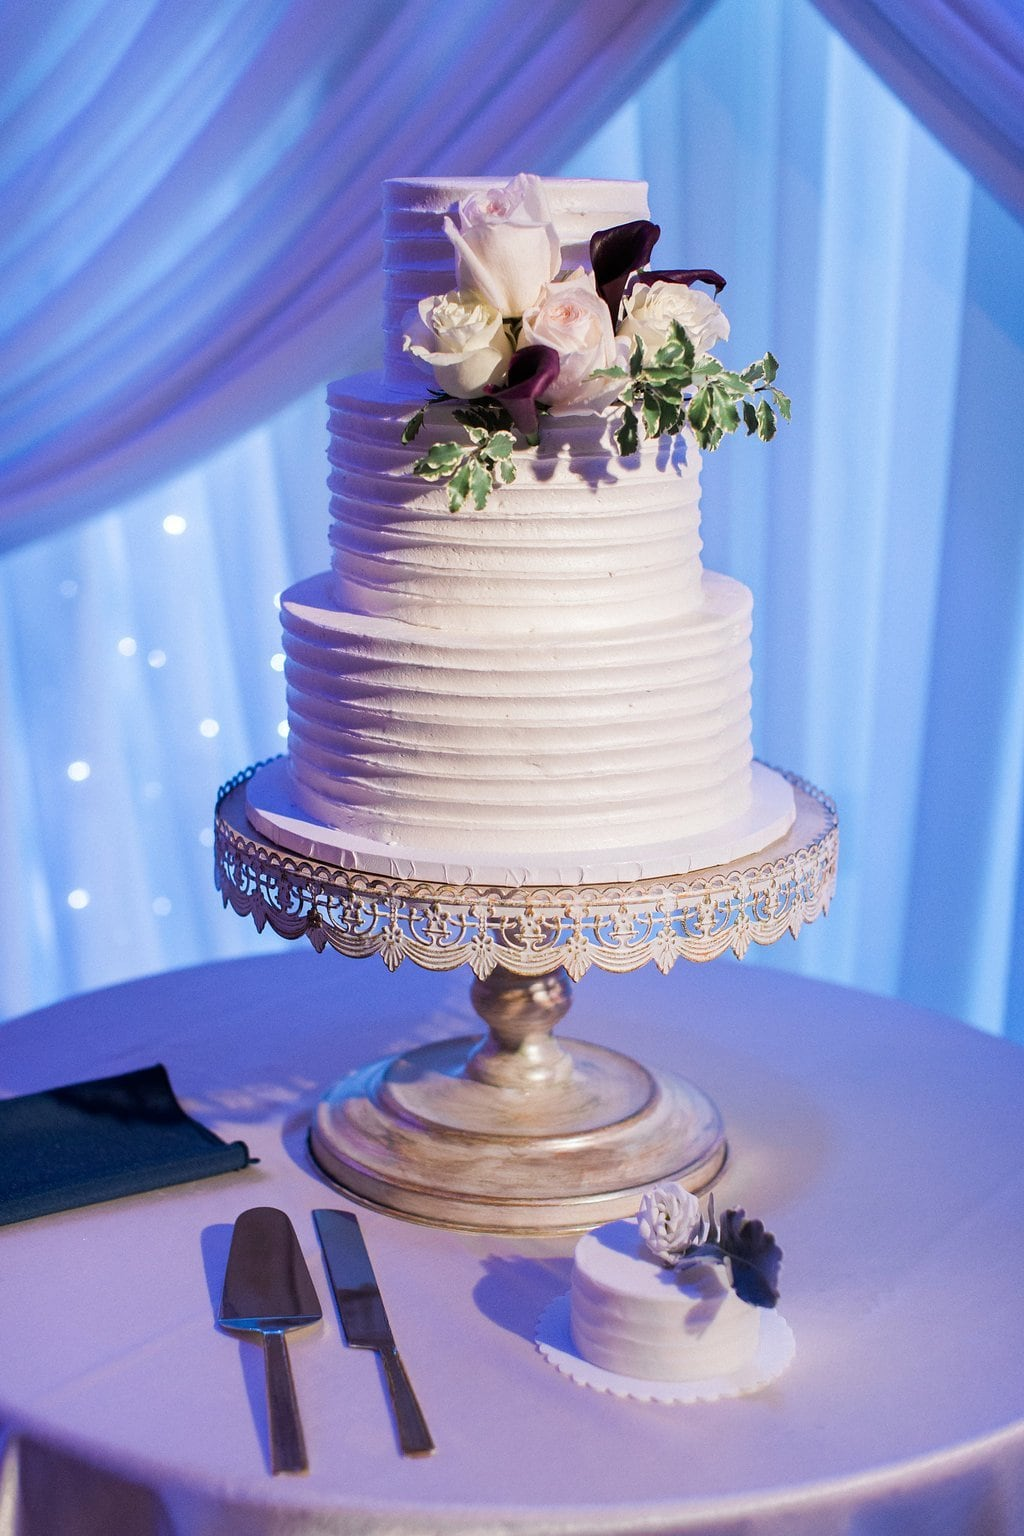 Simple white wedding cake with blush pink and purple accent flowers from Oakmont Bakery - J Verno Studios Winter Wedding